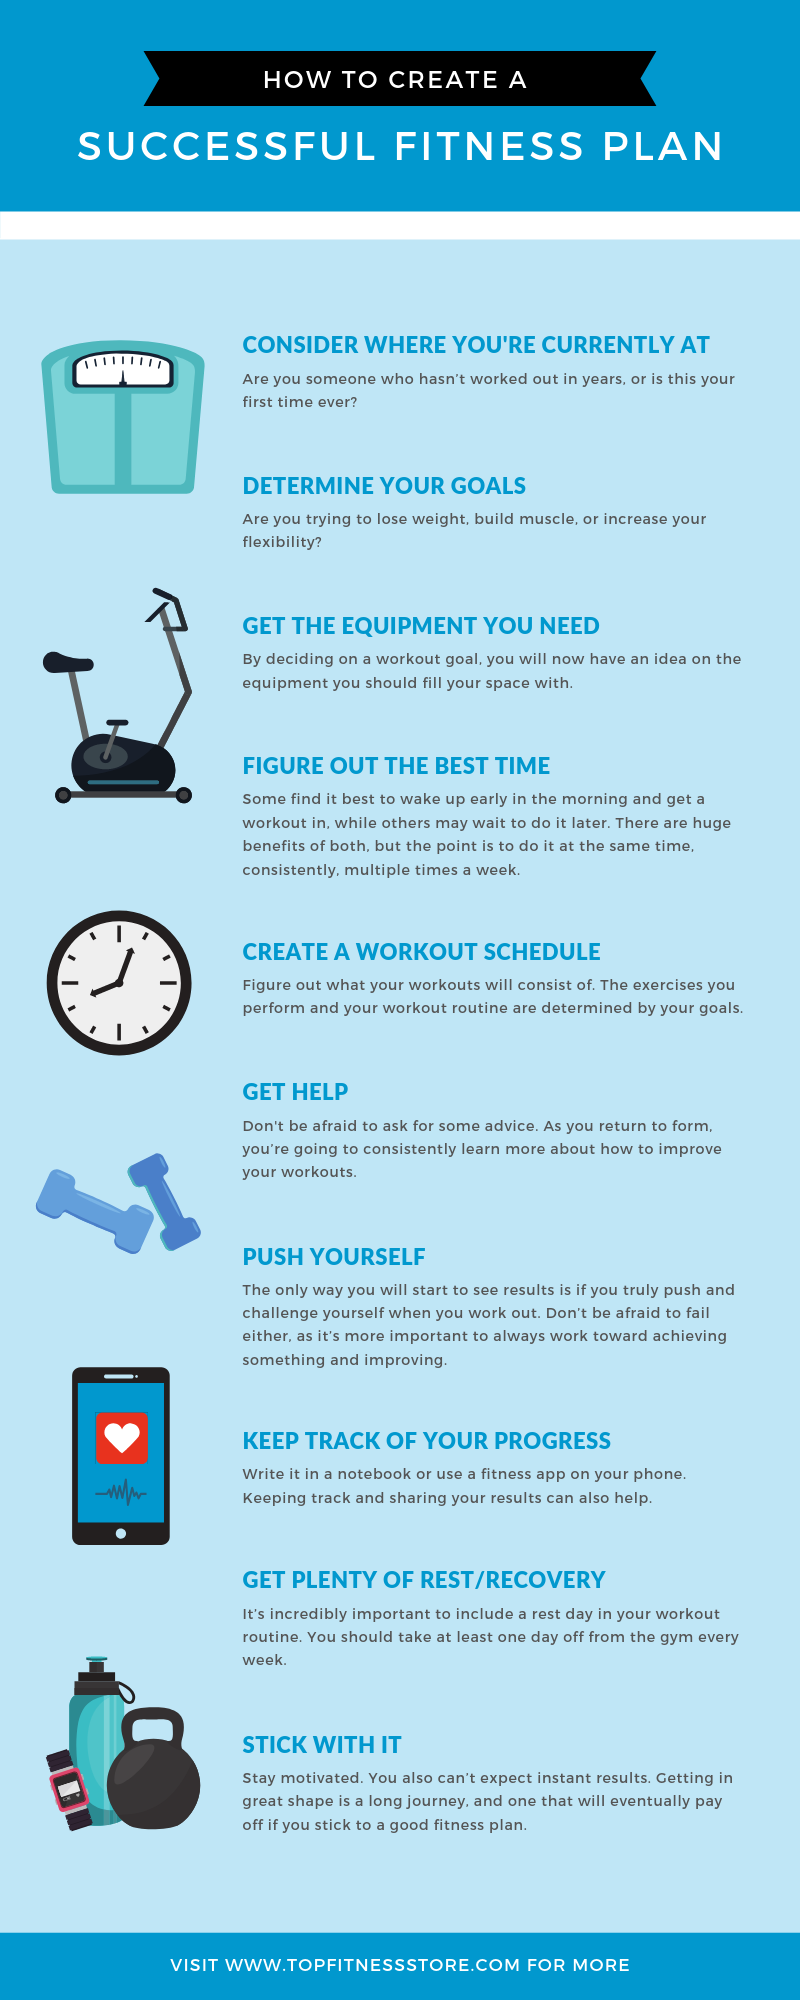 How to Create A Successful Fitness Plan infographic